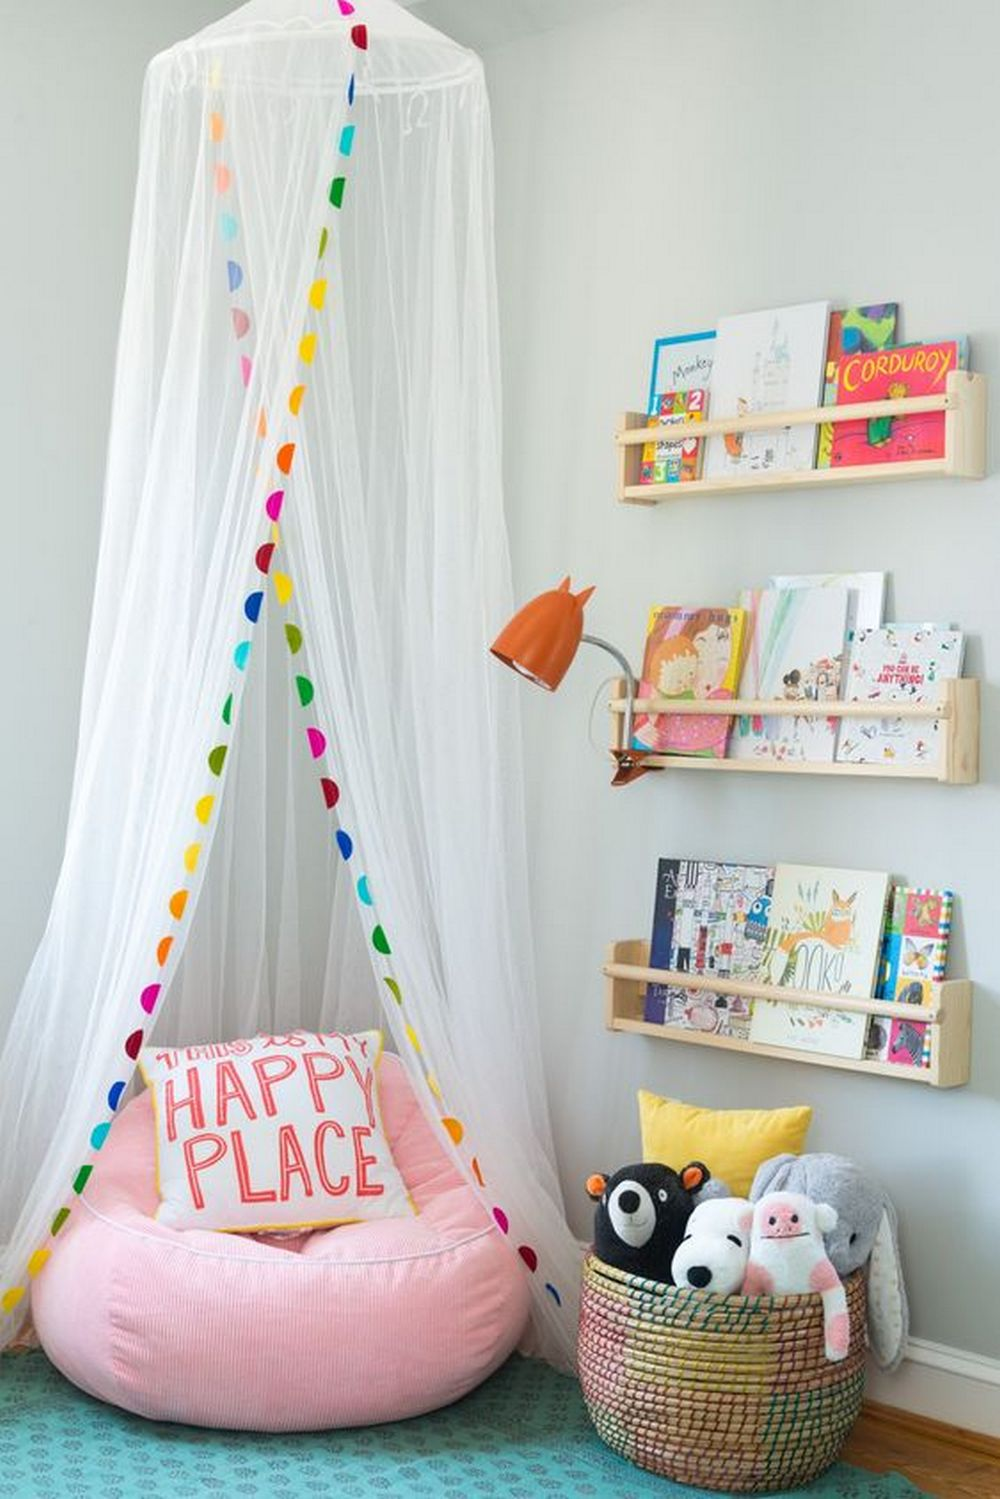 Do It Yourself Home Design: Easy DIY Canopy Reading Nook